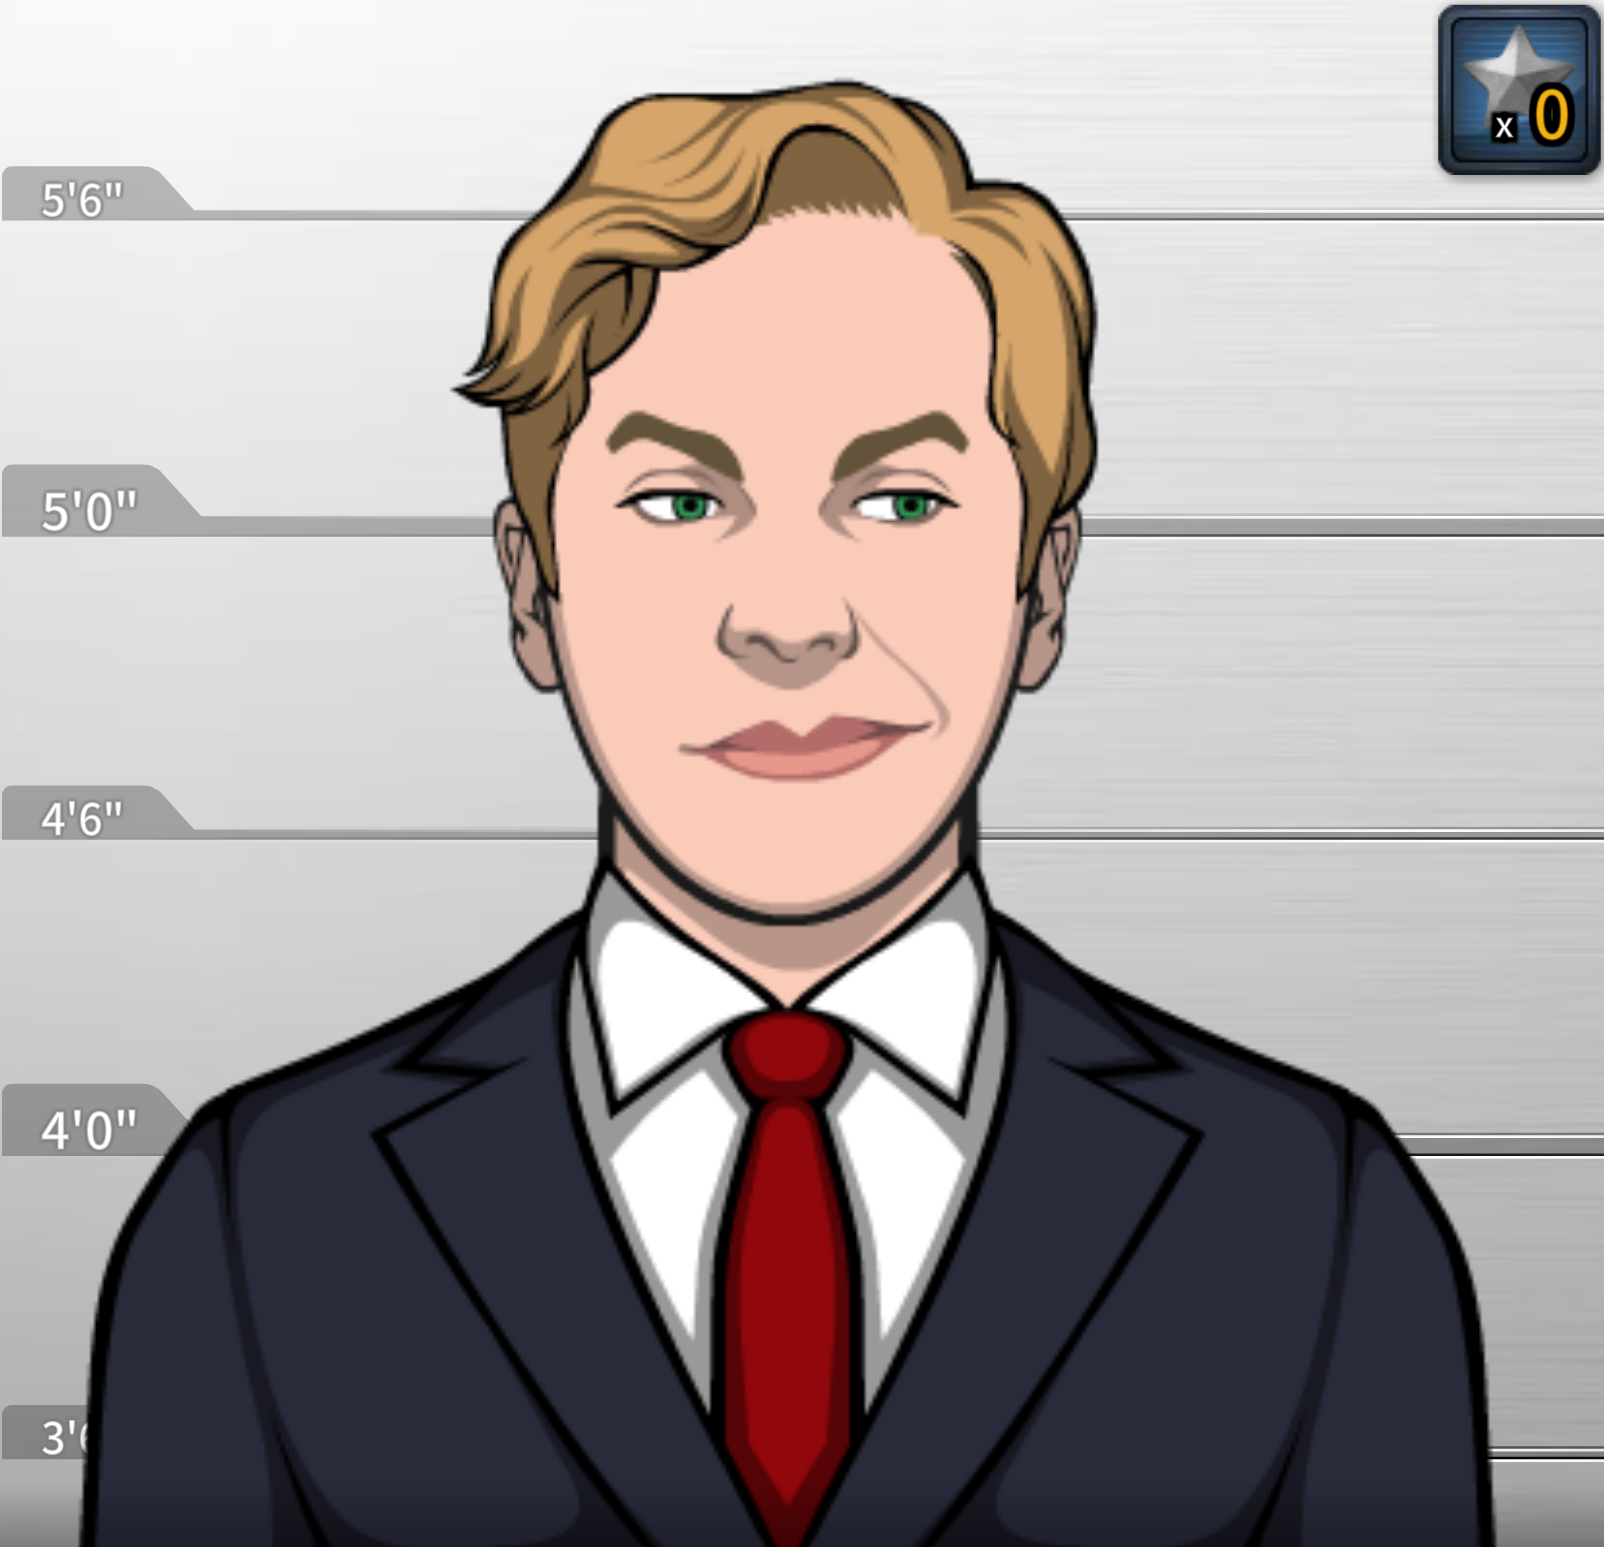 Criminal Case images Harry Krane (Grimsborough: Financial Center) HD wallpaper and background photos